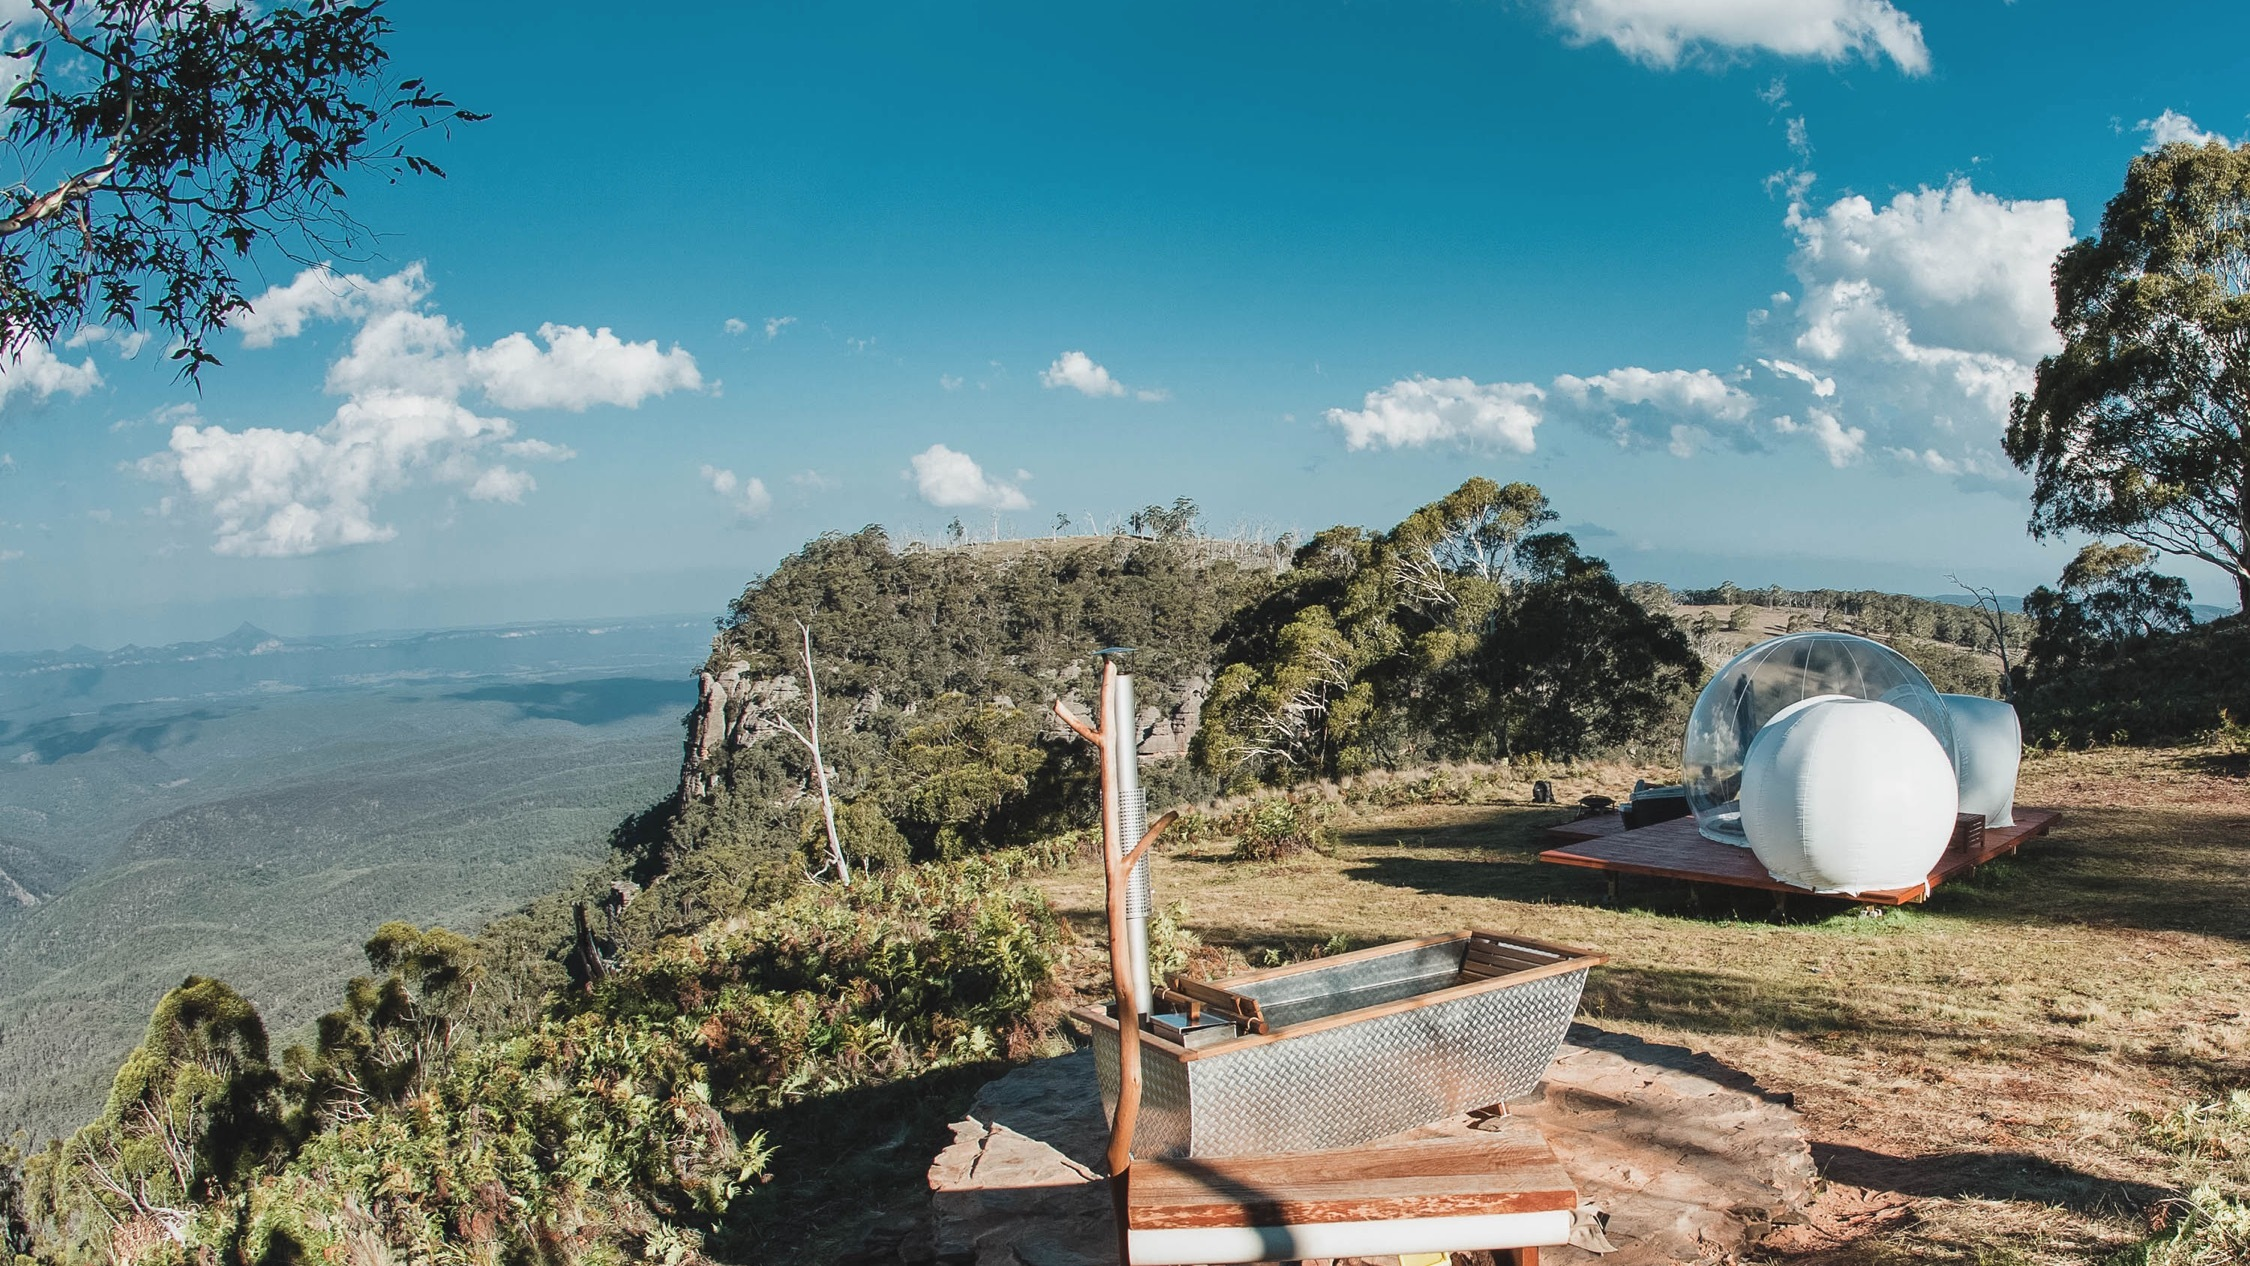 Bath and tent with deck at Bubble Tent Blue Mountains